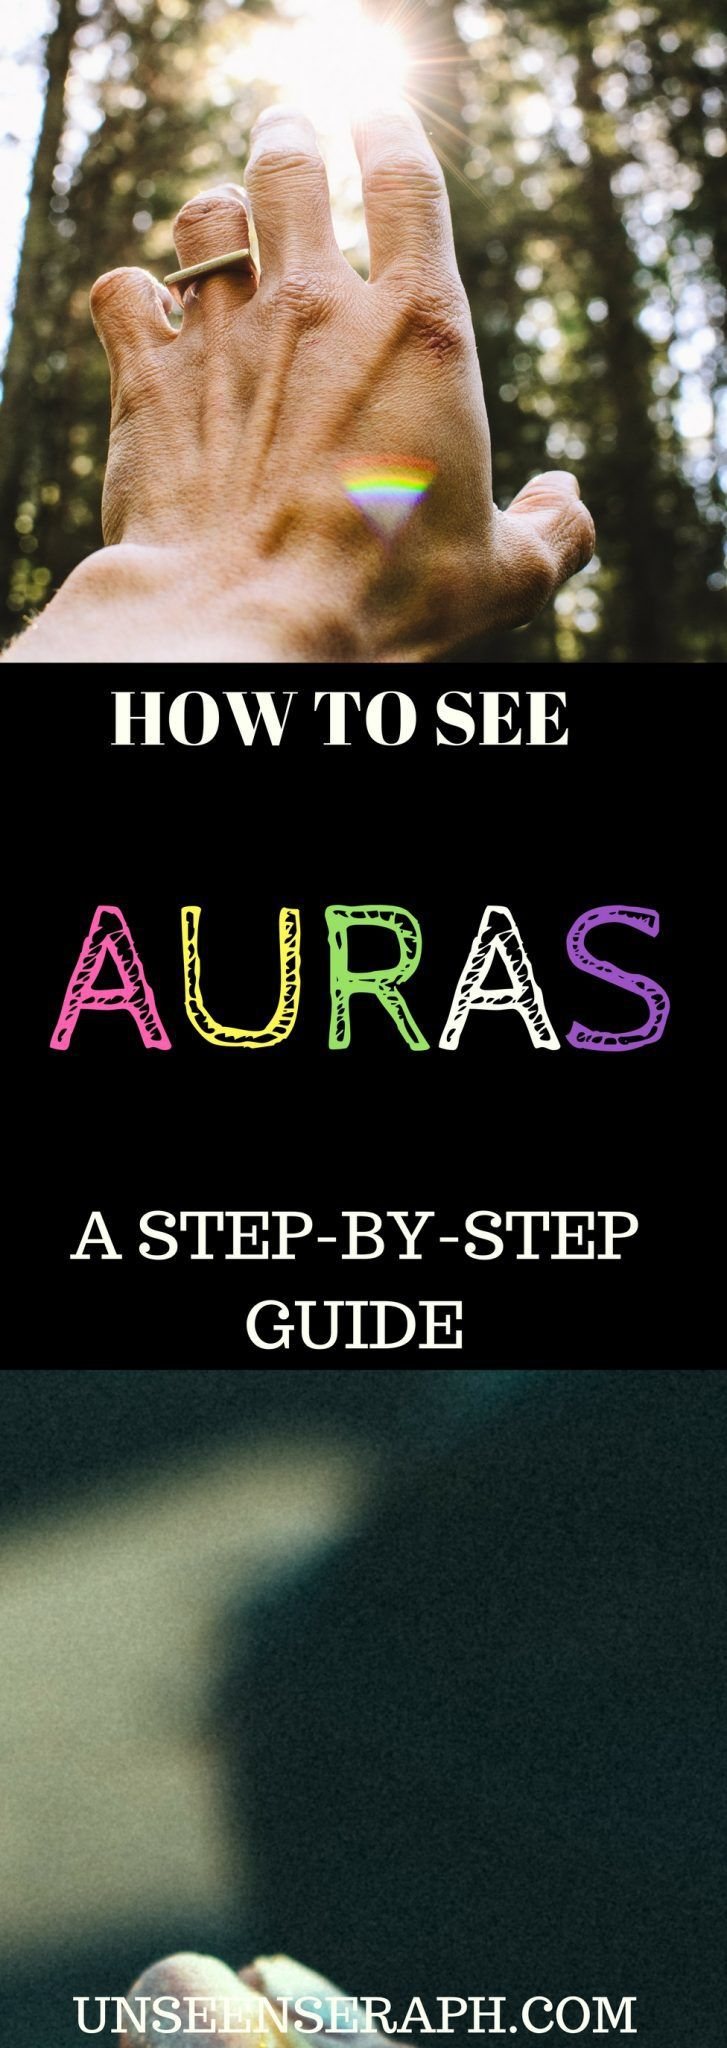 A step-by-step guide to seeing auras. Learn how to physically see auras, energies and spirits.